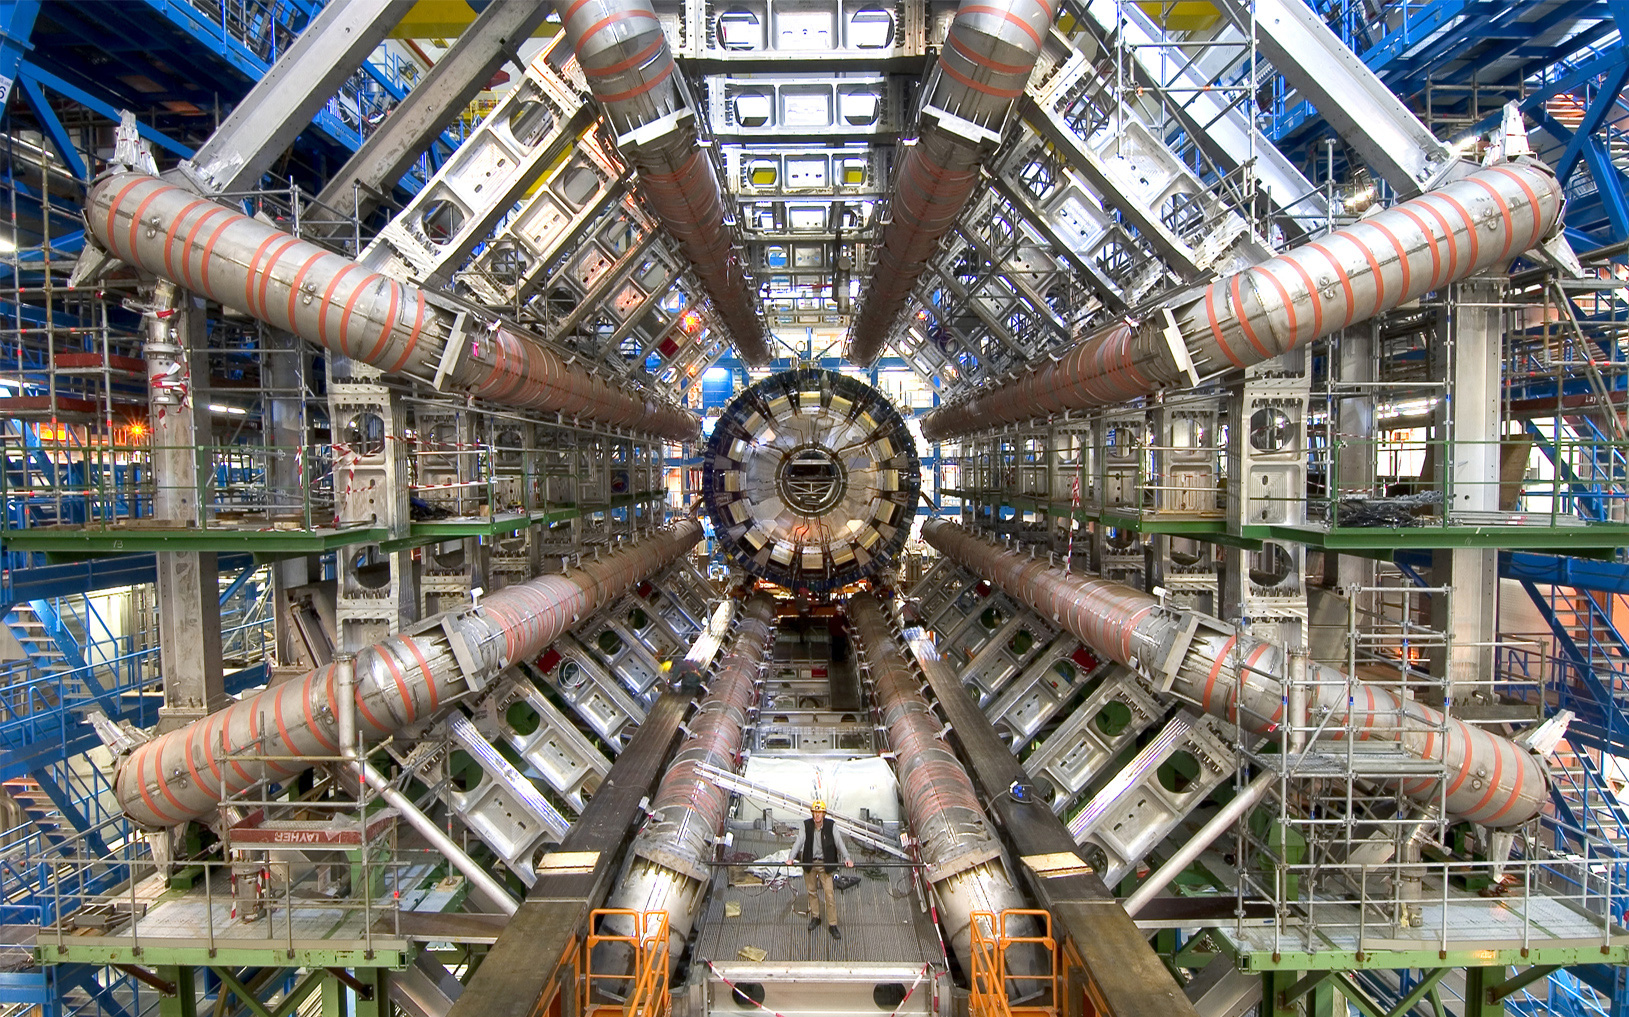 The Large Hardon Collider is the world's largest and most powerful particle accelerator. It is used to  investigate many aspects of particle physics and was intregal in Higgs and Englert's discovery. Photo from extremetech.com